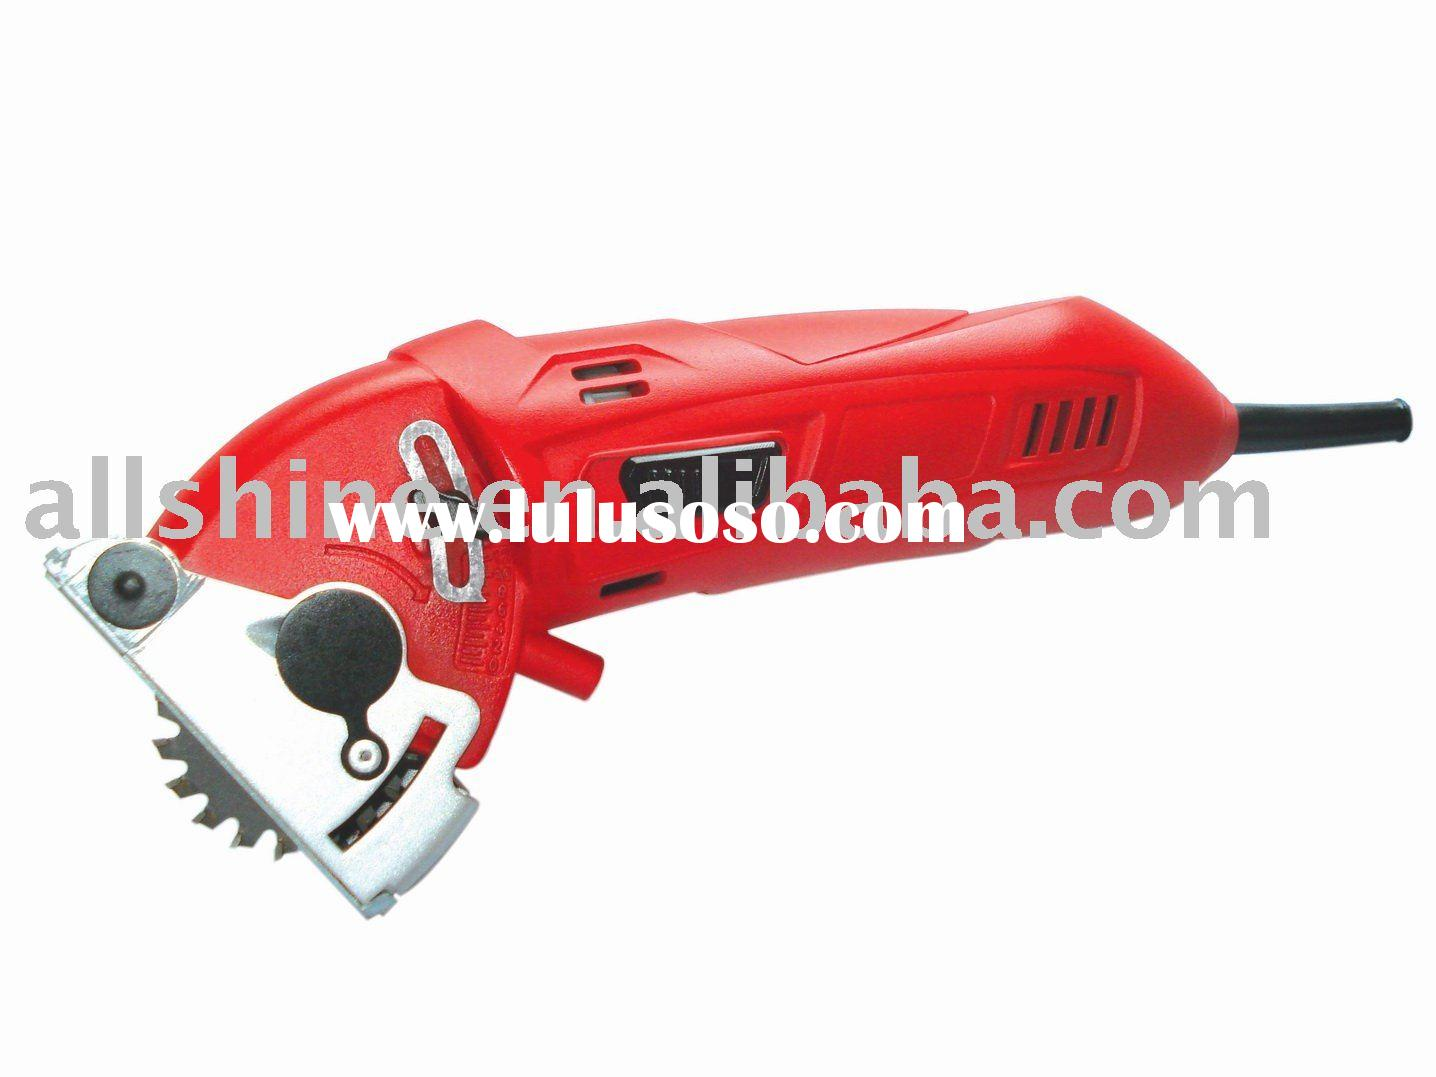 Mini Saw   M1Y-HY01-54A  Power Tool